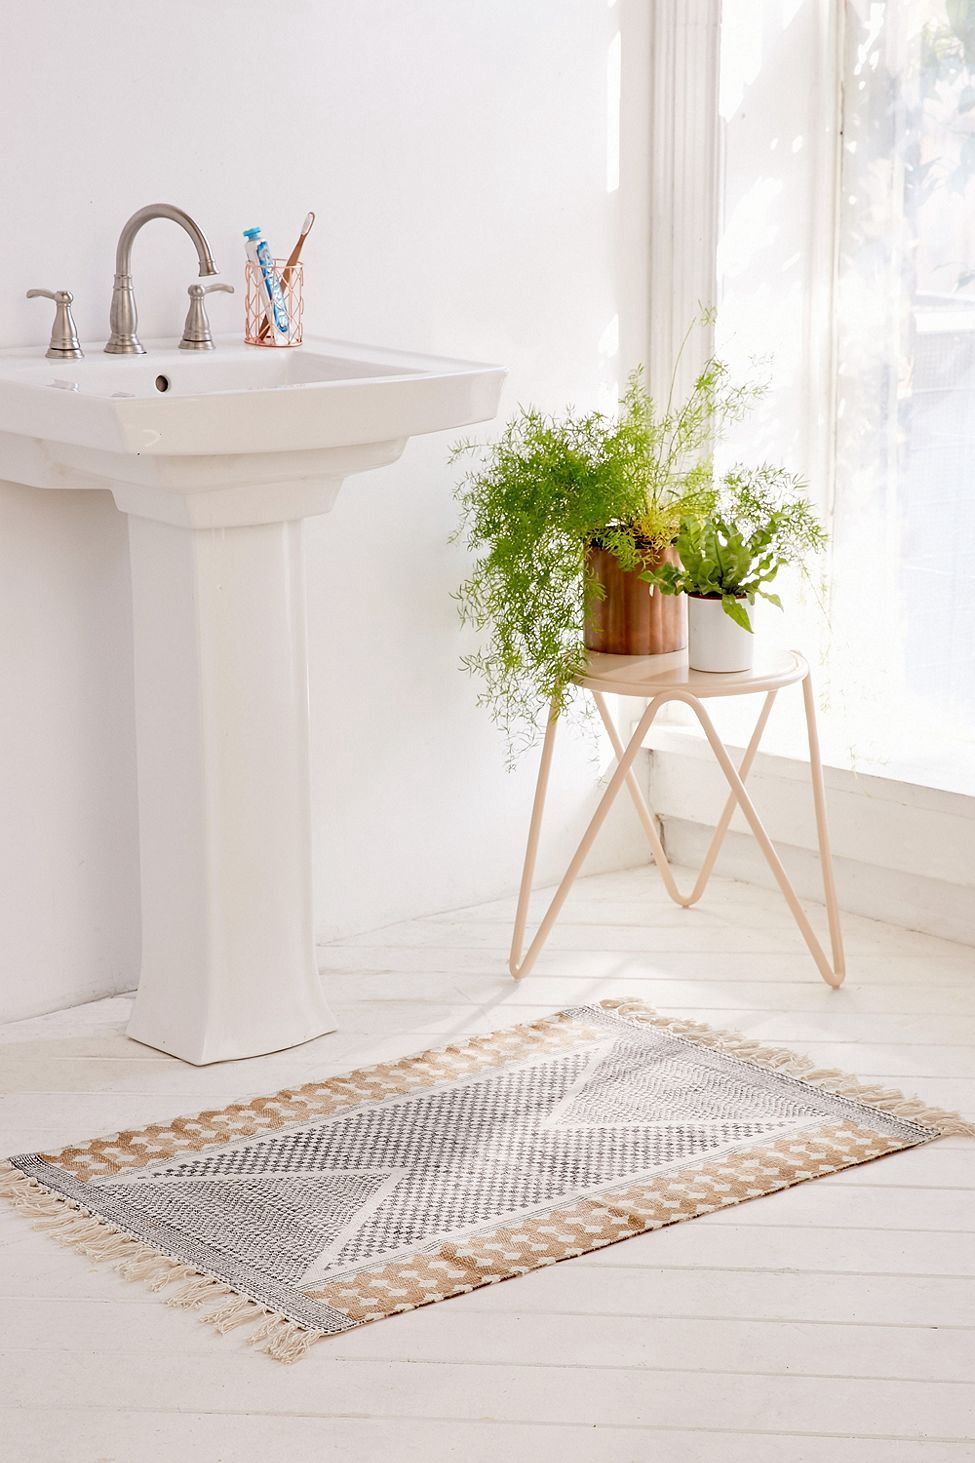 black and white kitchen rug cabinets columbus calisa block printed for the home t rugs bathroom